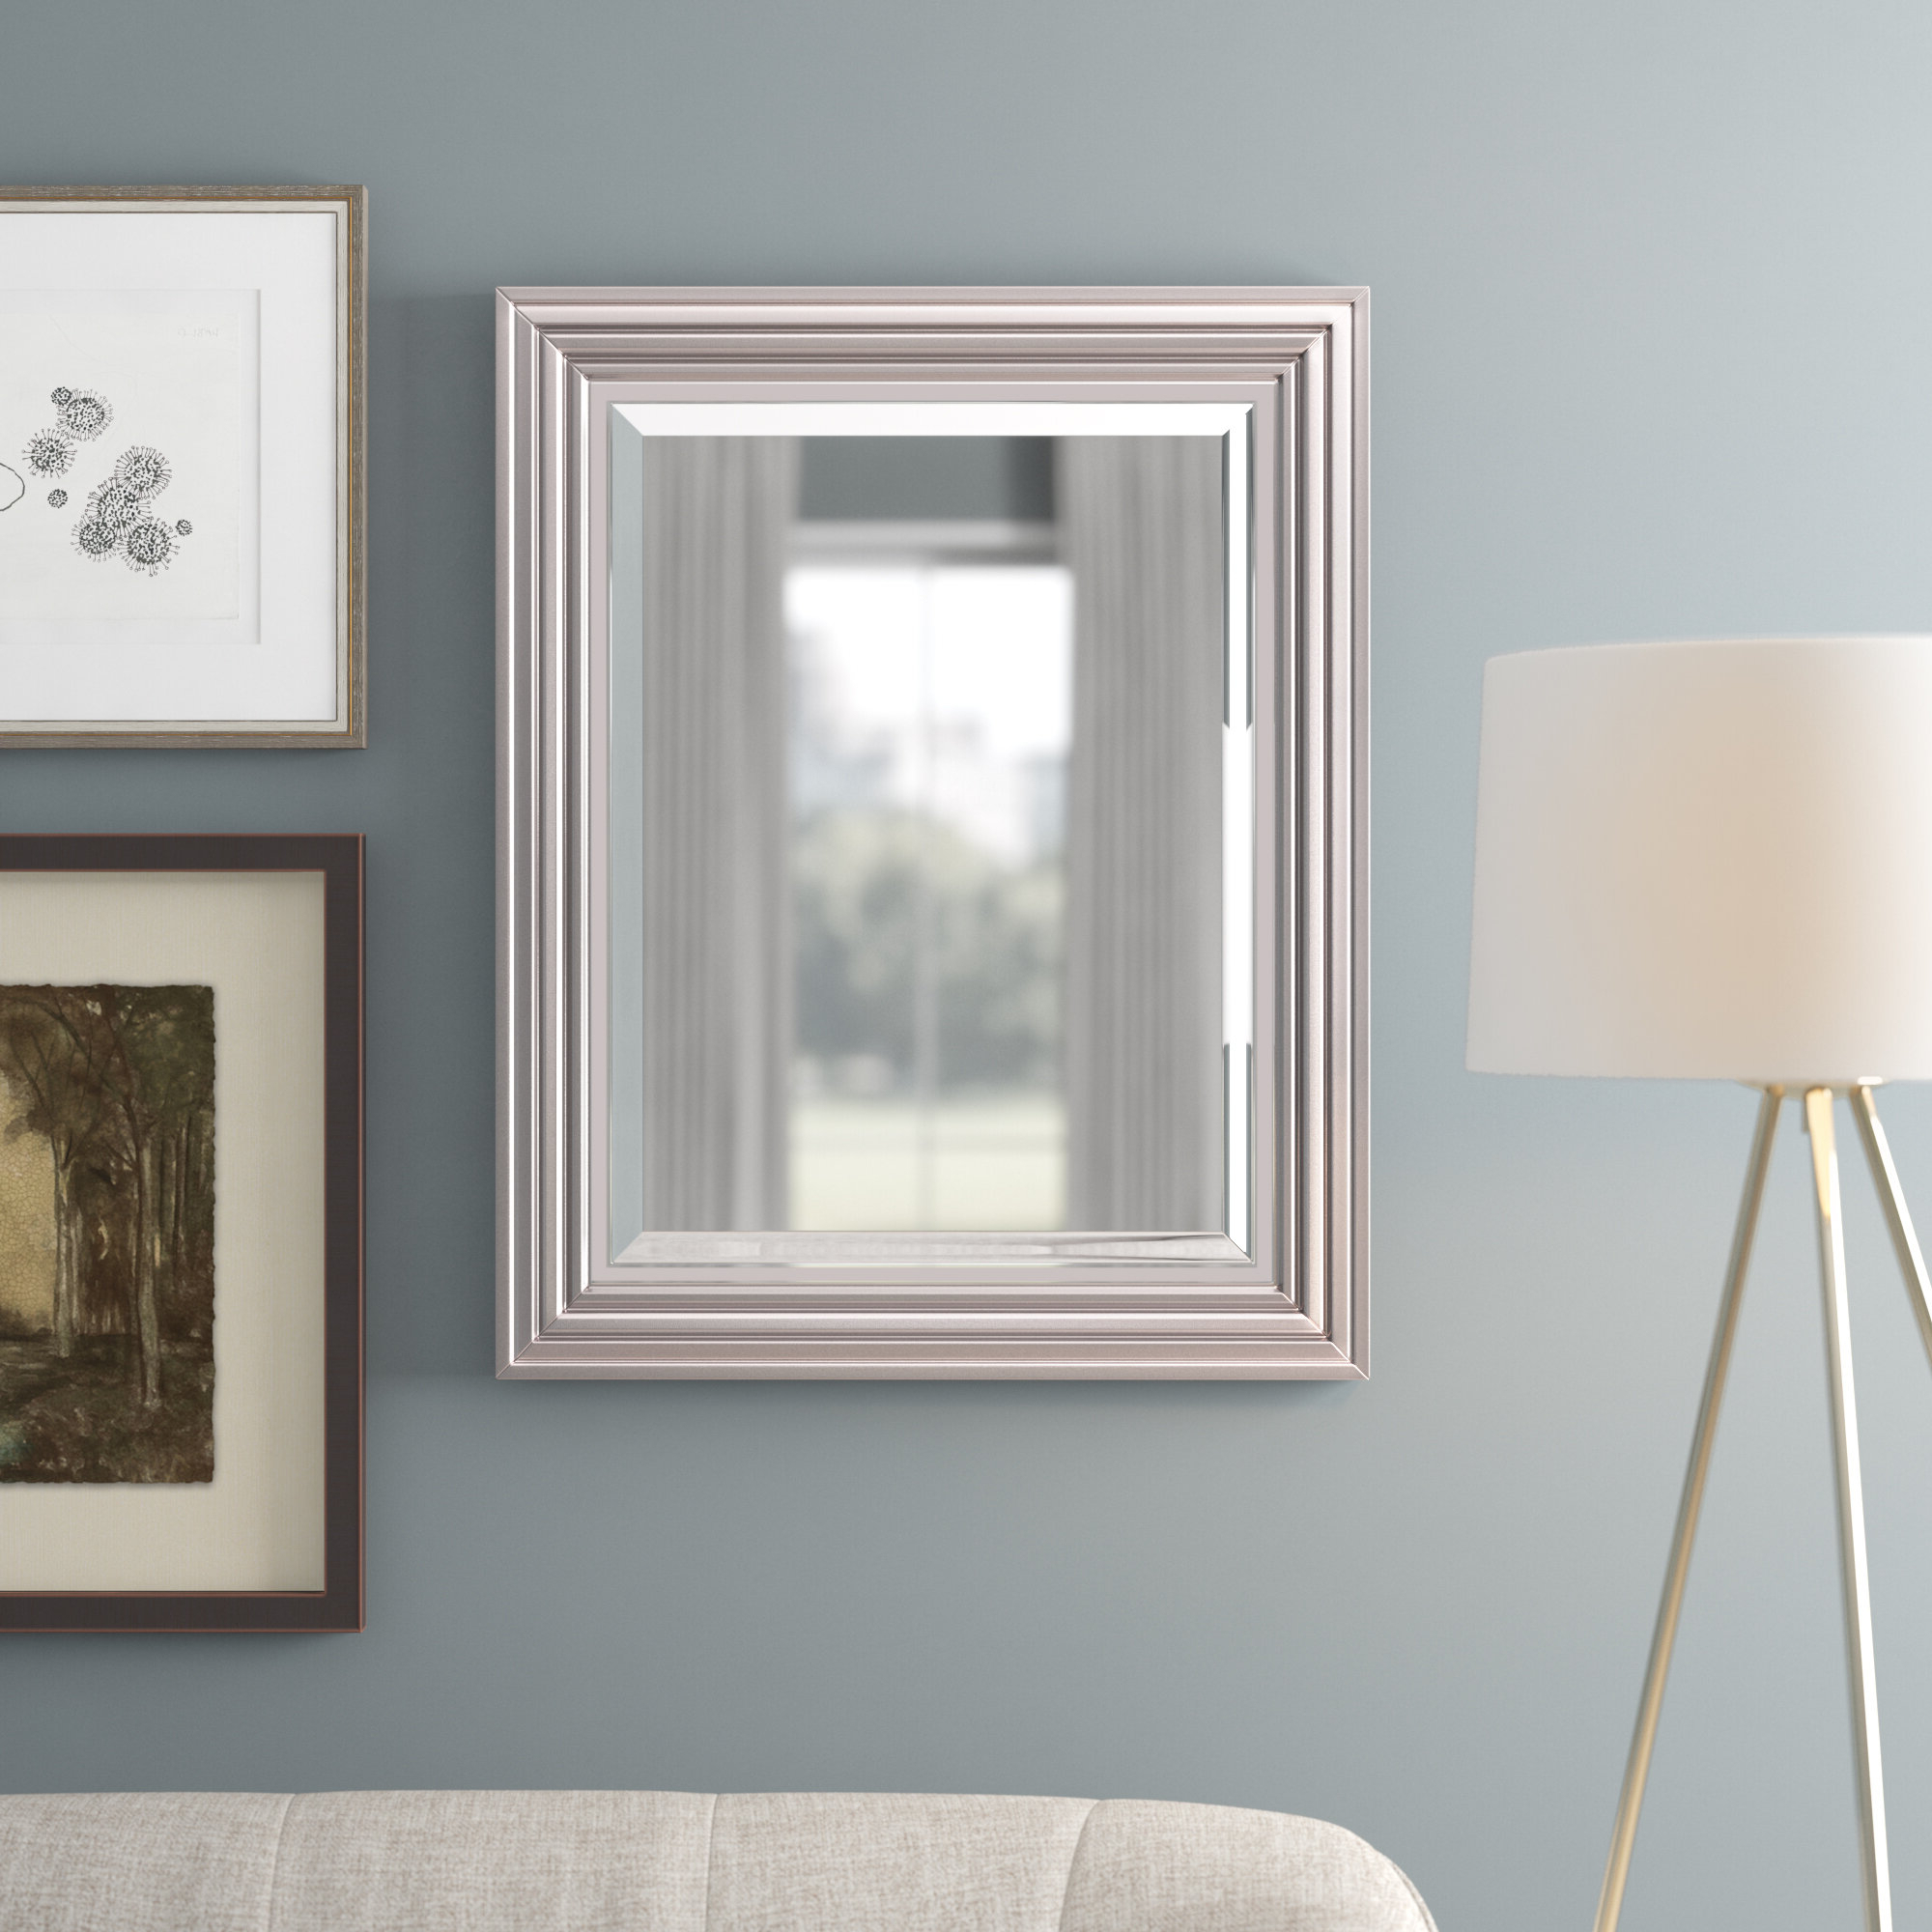 Modern & Contemporary Beveled Overmantel Mirrors Intended For Most Recent Ahner Modern & Contemporary Beveled Accent Mirror (View 11 of 20)